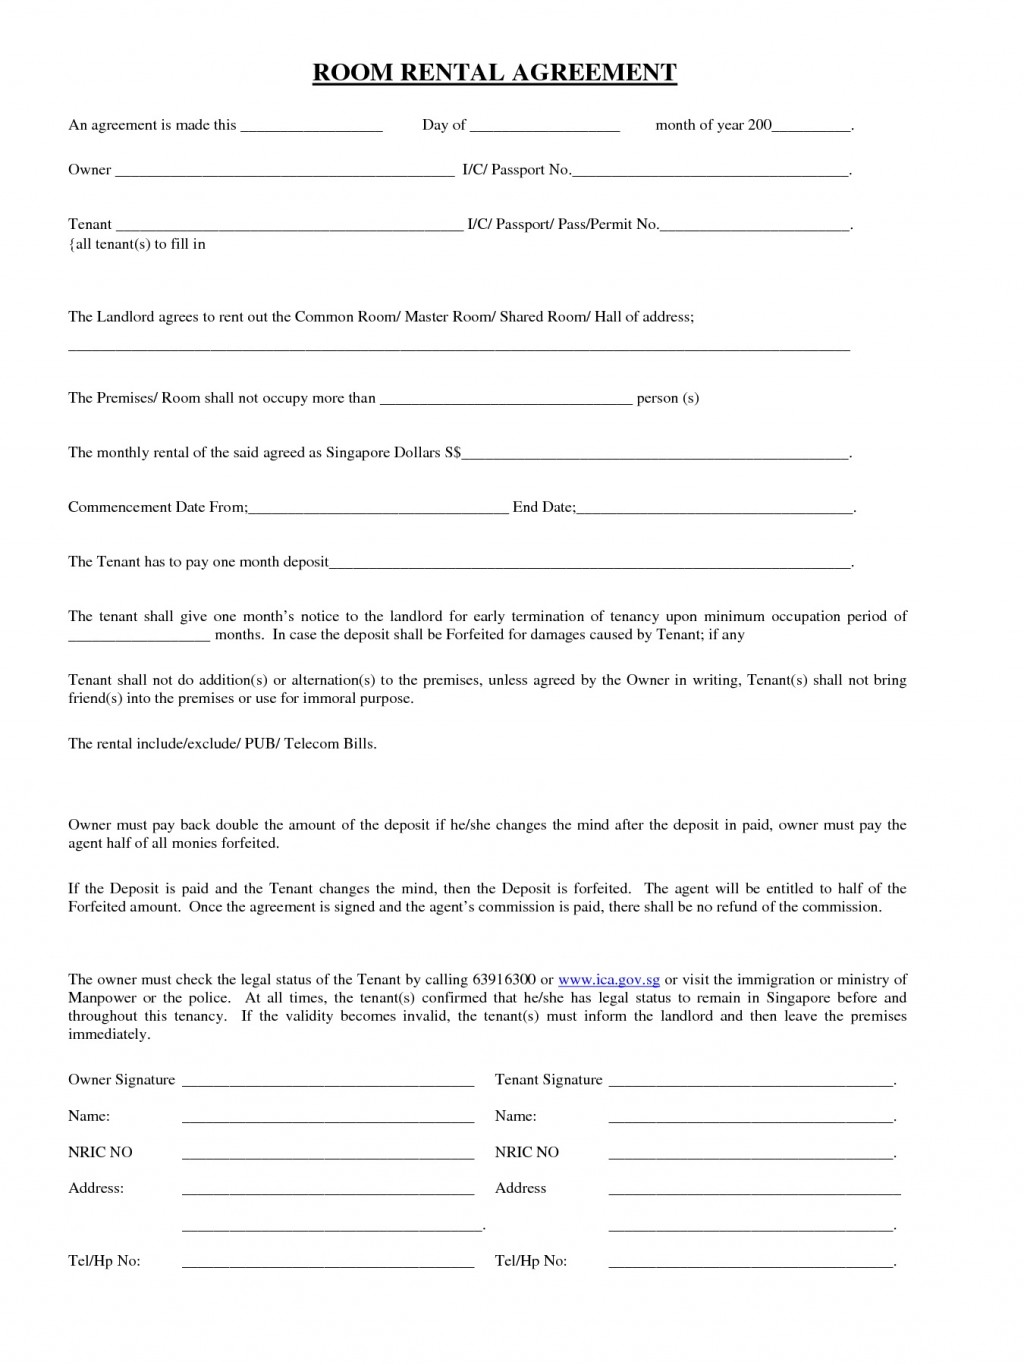 Room Rental Agreement Template Printable Realestate Form  Word Doc Malaysia Singapore PdfLarge